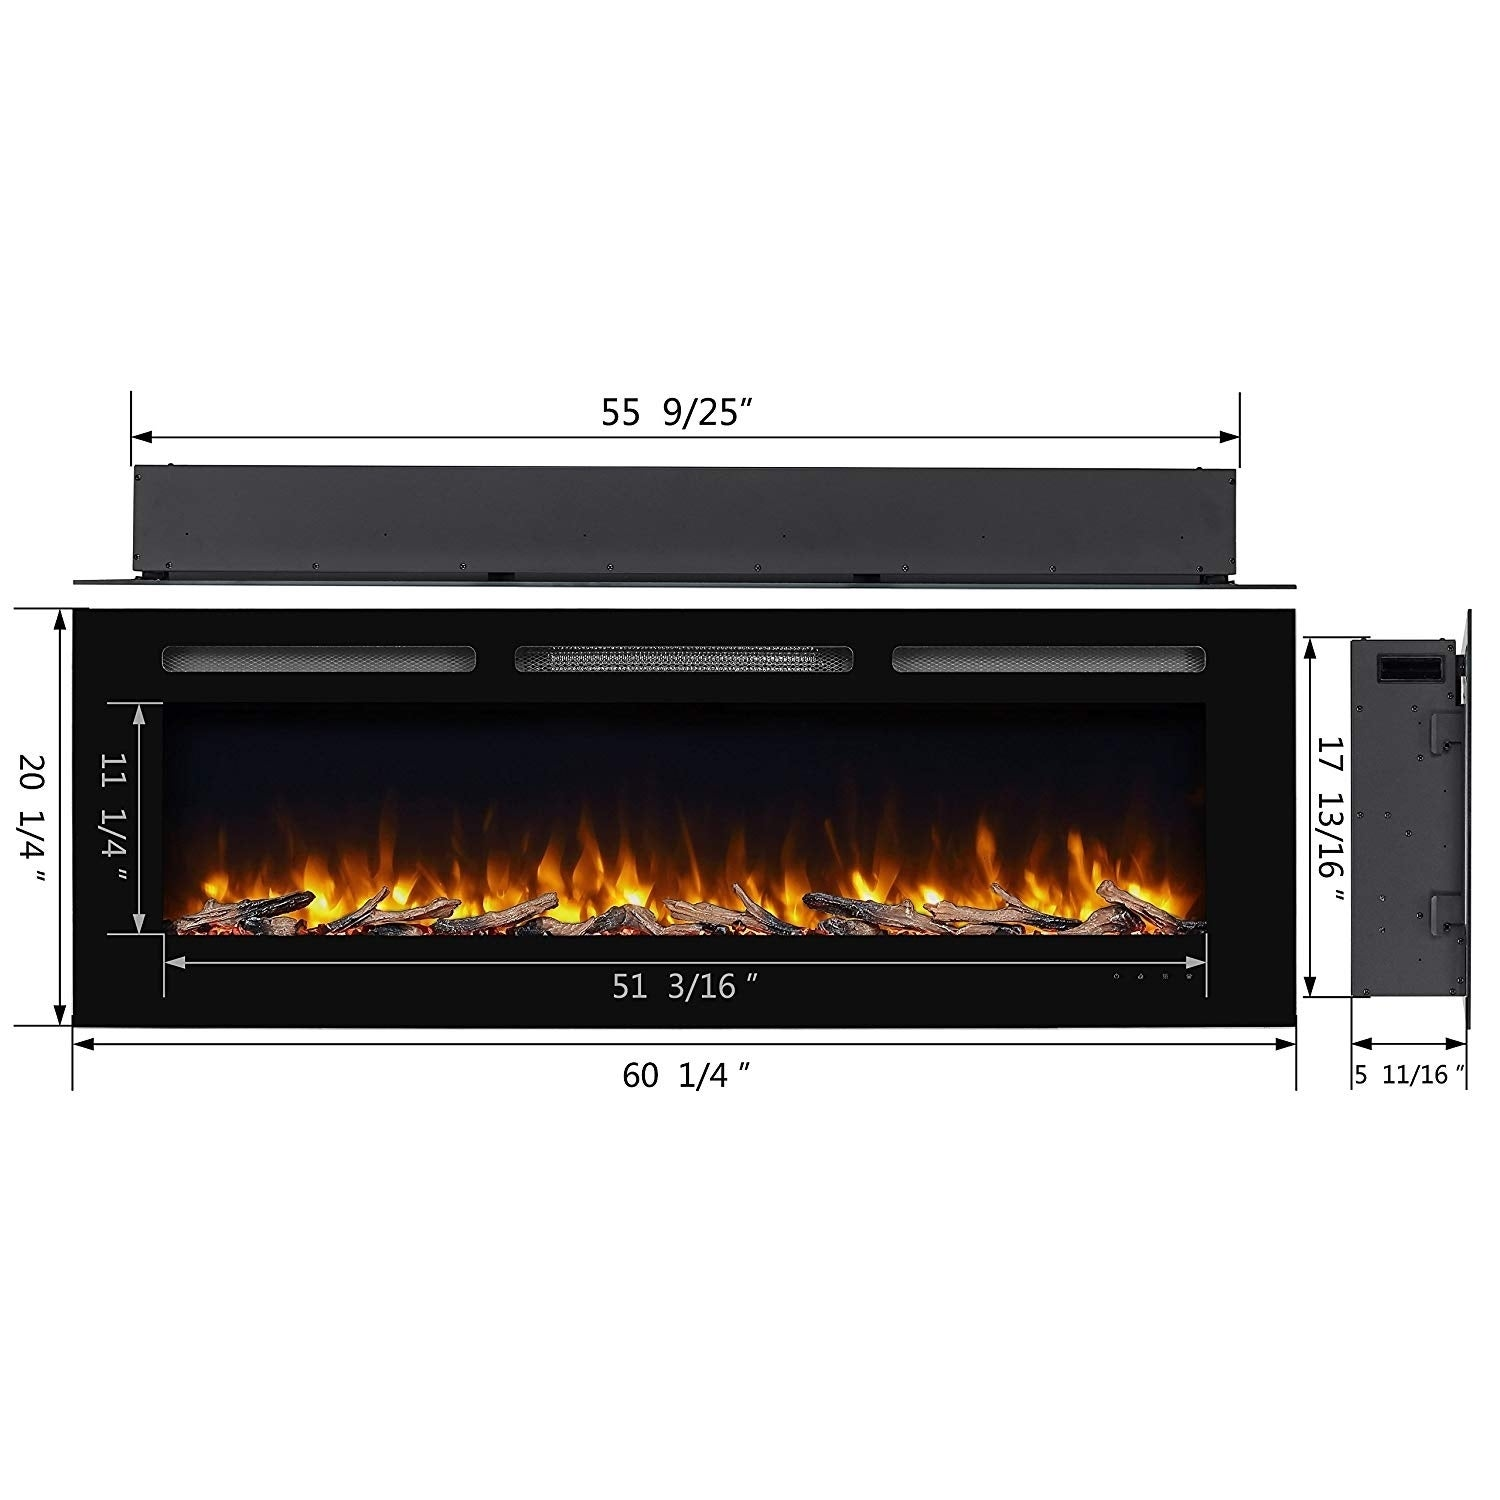 "Best Recessed Electric Fireplace Inspirational 60"" Alice In Wall Recessed Electric Fireplace 1500w Black"